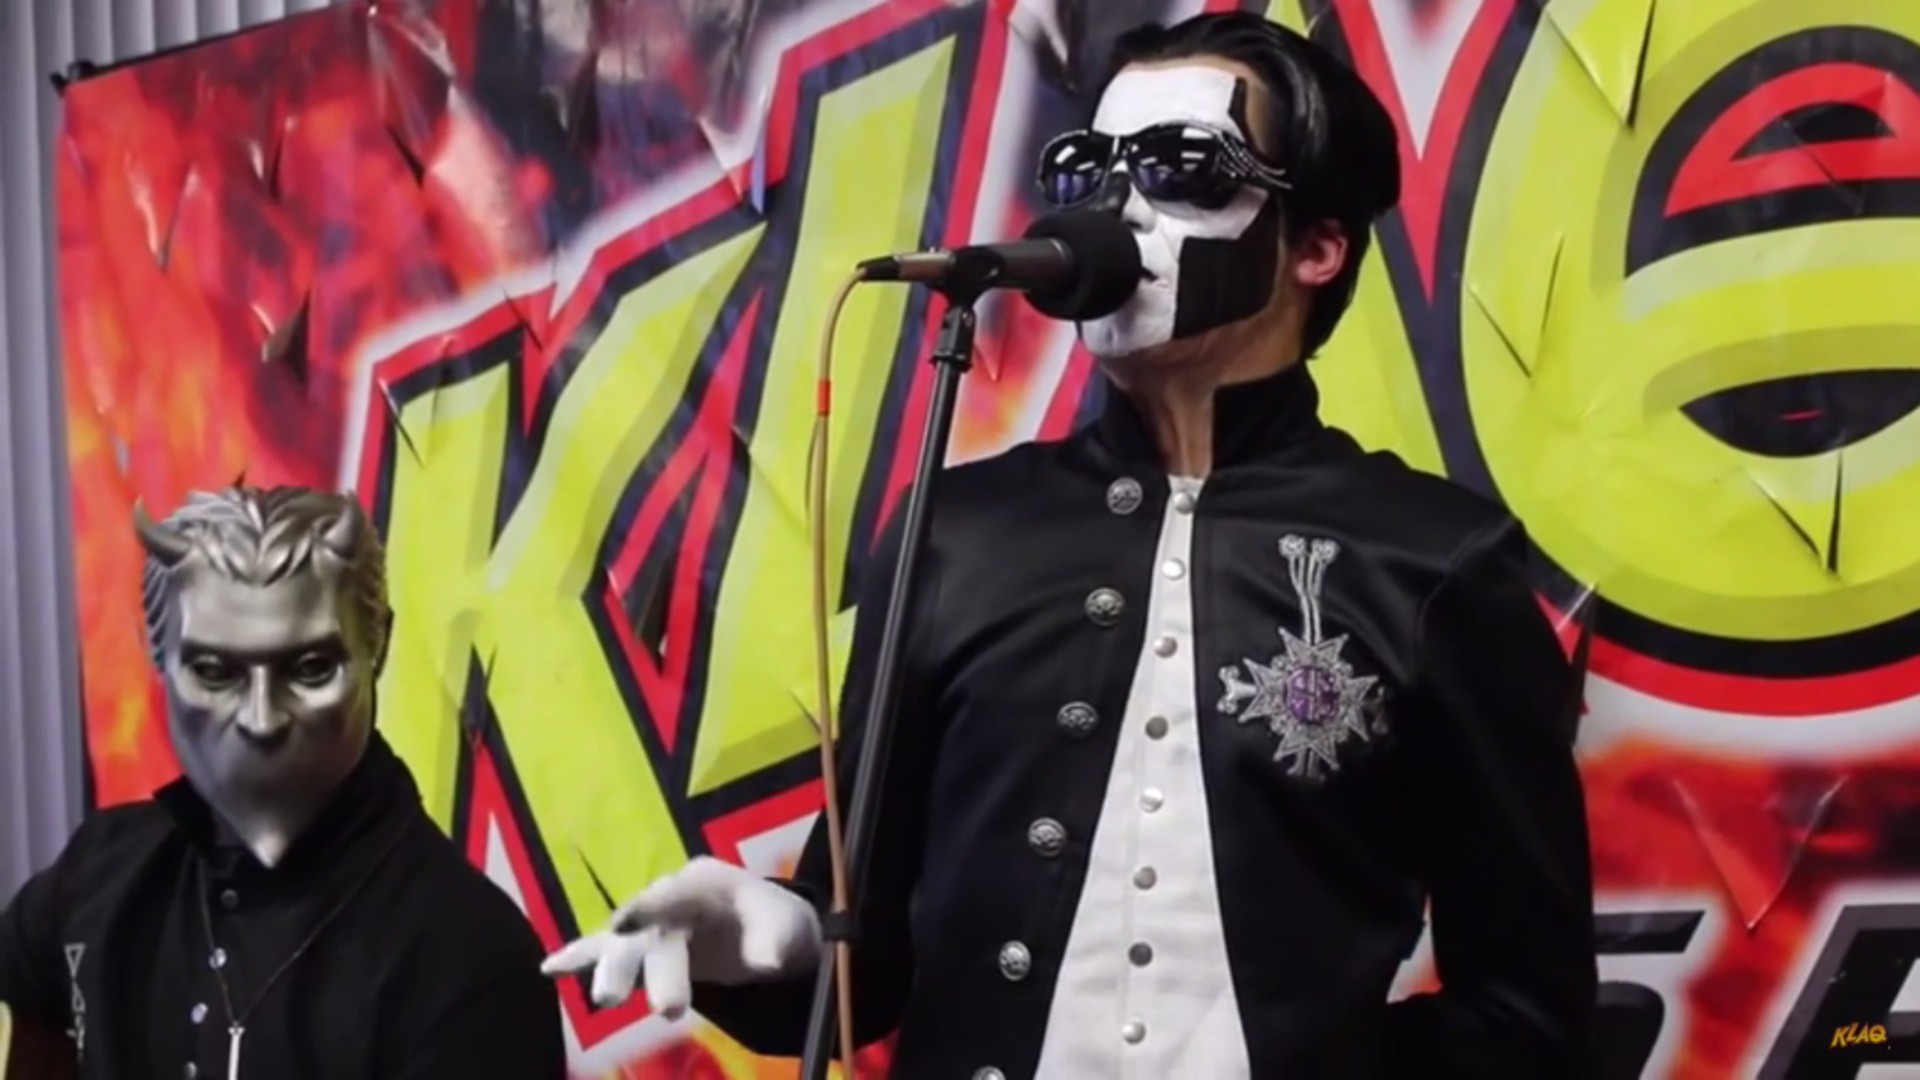 "Ghost Performs 'Jigolo Har Megiddo"" On El Paso Radio Station"